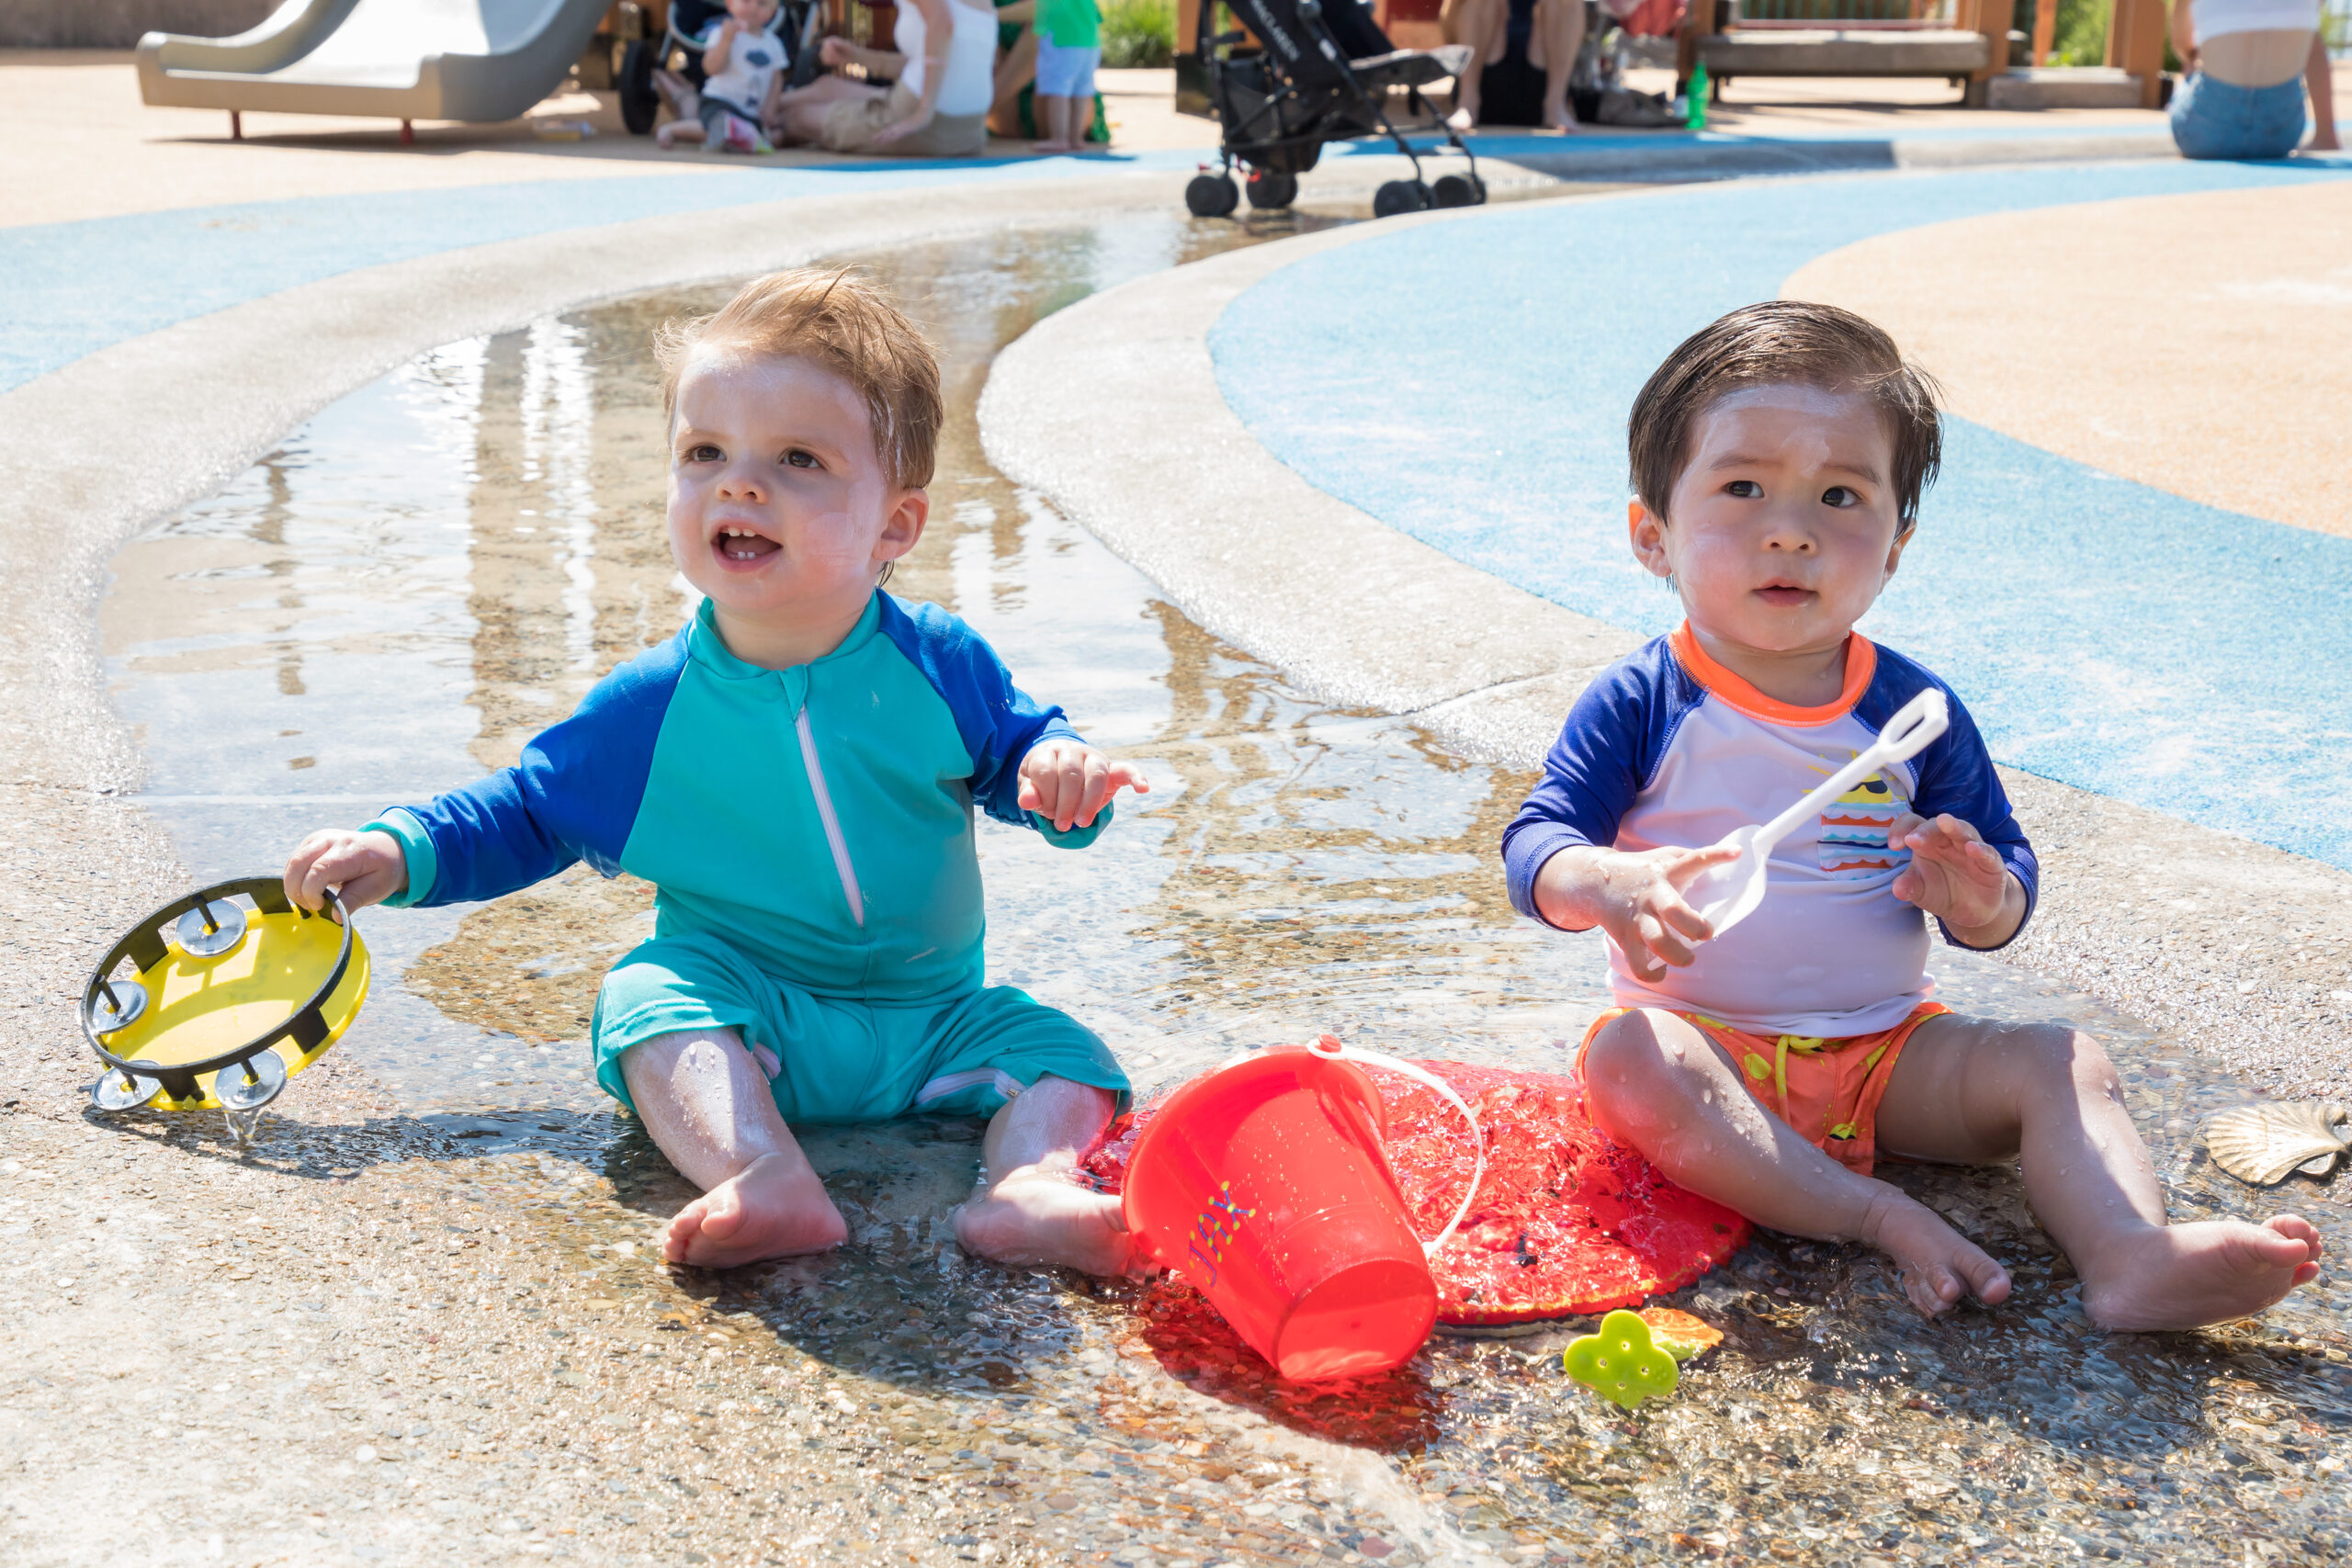 Two babies play in the water at Pier 51